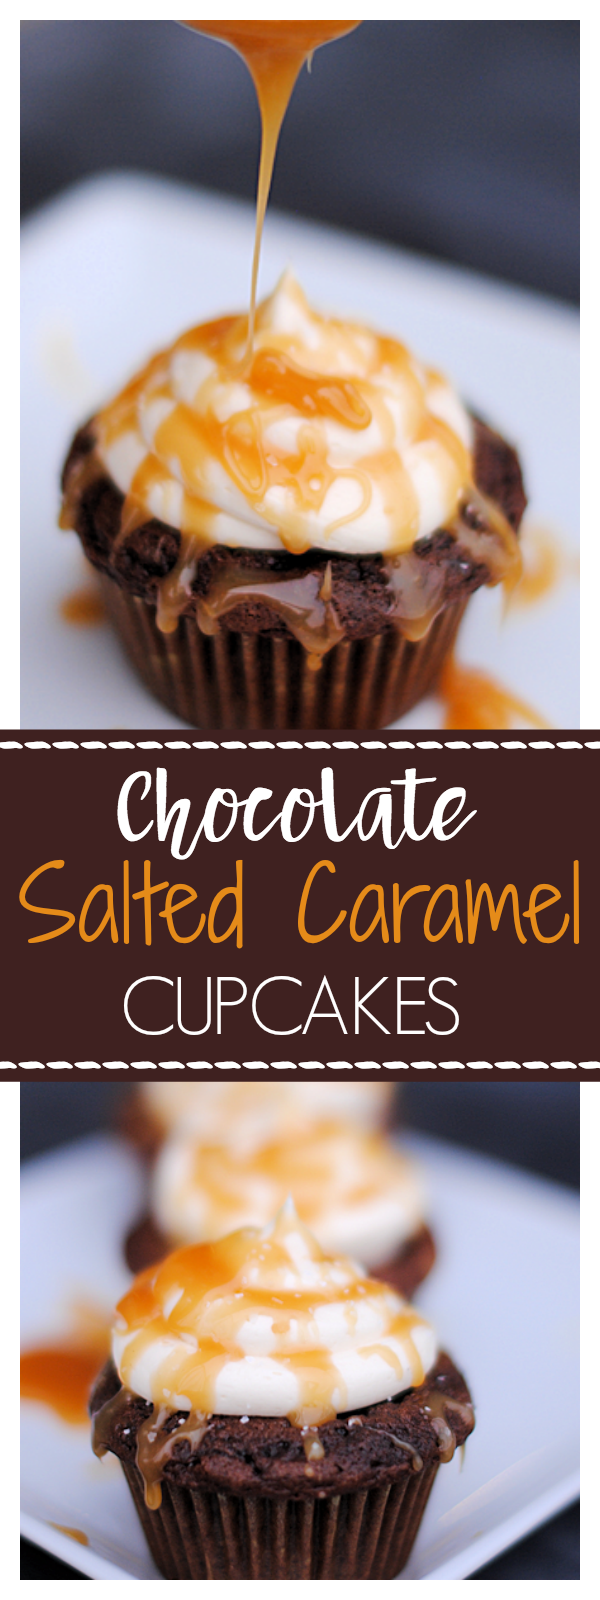 Chocolate Salted Caramel Cupcakes Recipe-These chocolate salted cupcakes taste amazing! And they are super easy to make! #recipes #cupcakes #bake #caramel #chocolate